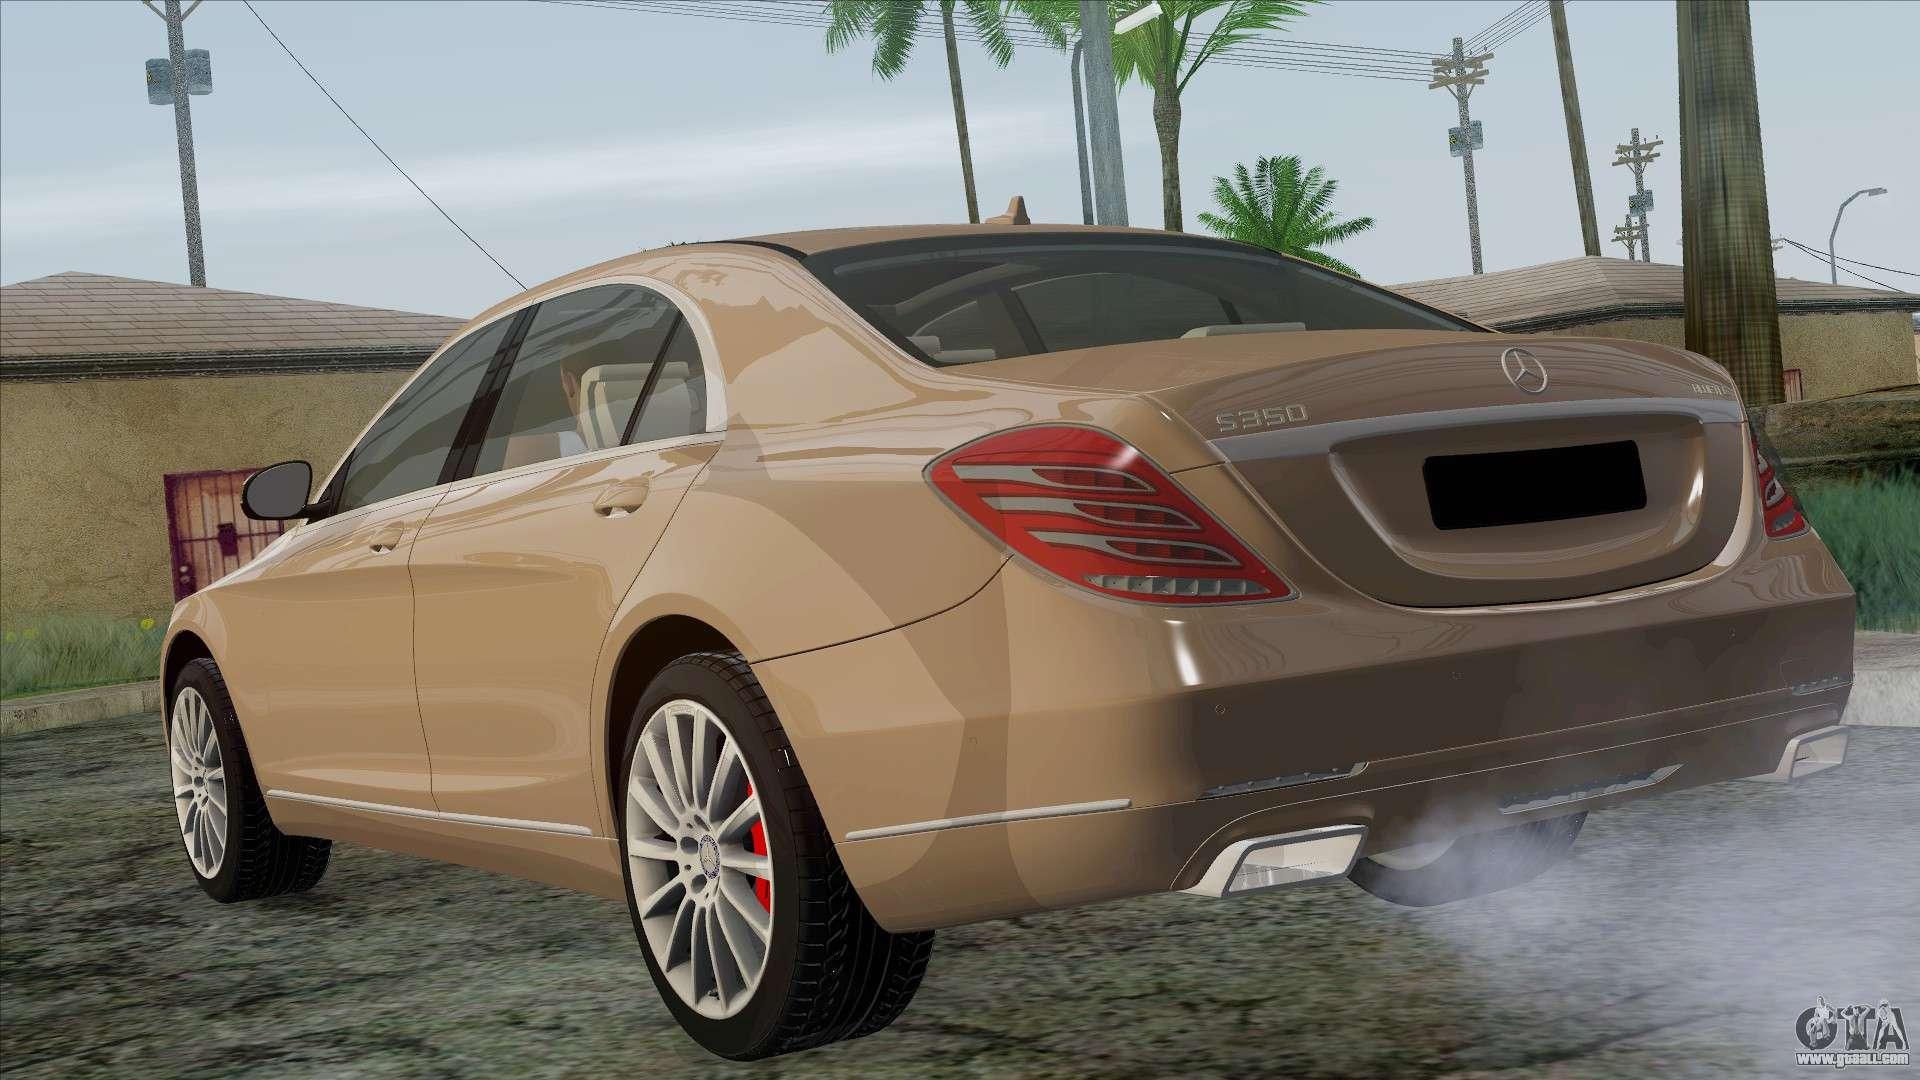 Mercedes benz s350 w222 2014 for gta san andreas for Mercedes benz s350 2014